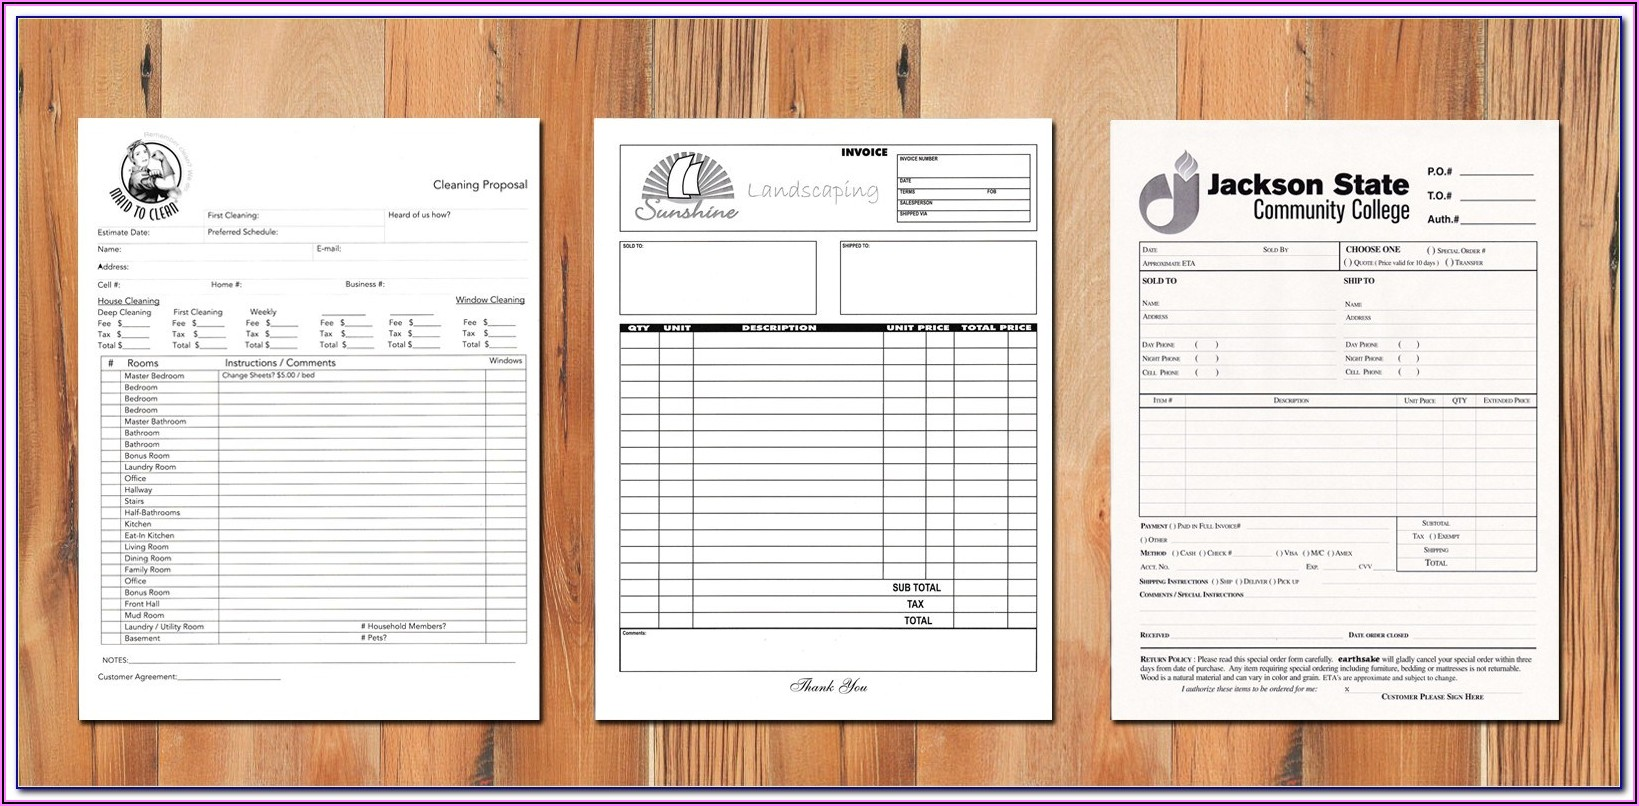 Continuous Business Forms Printing